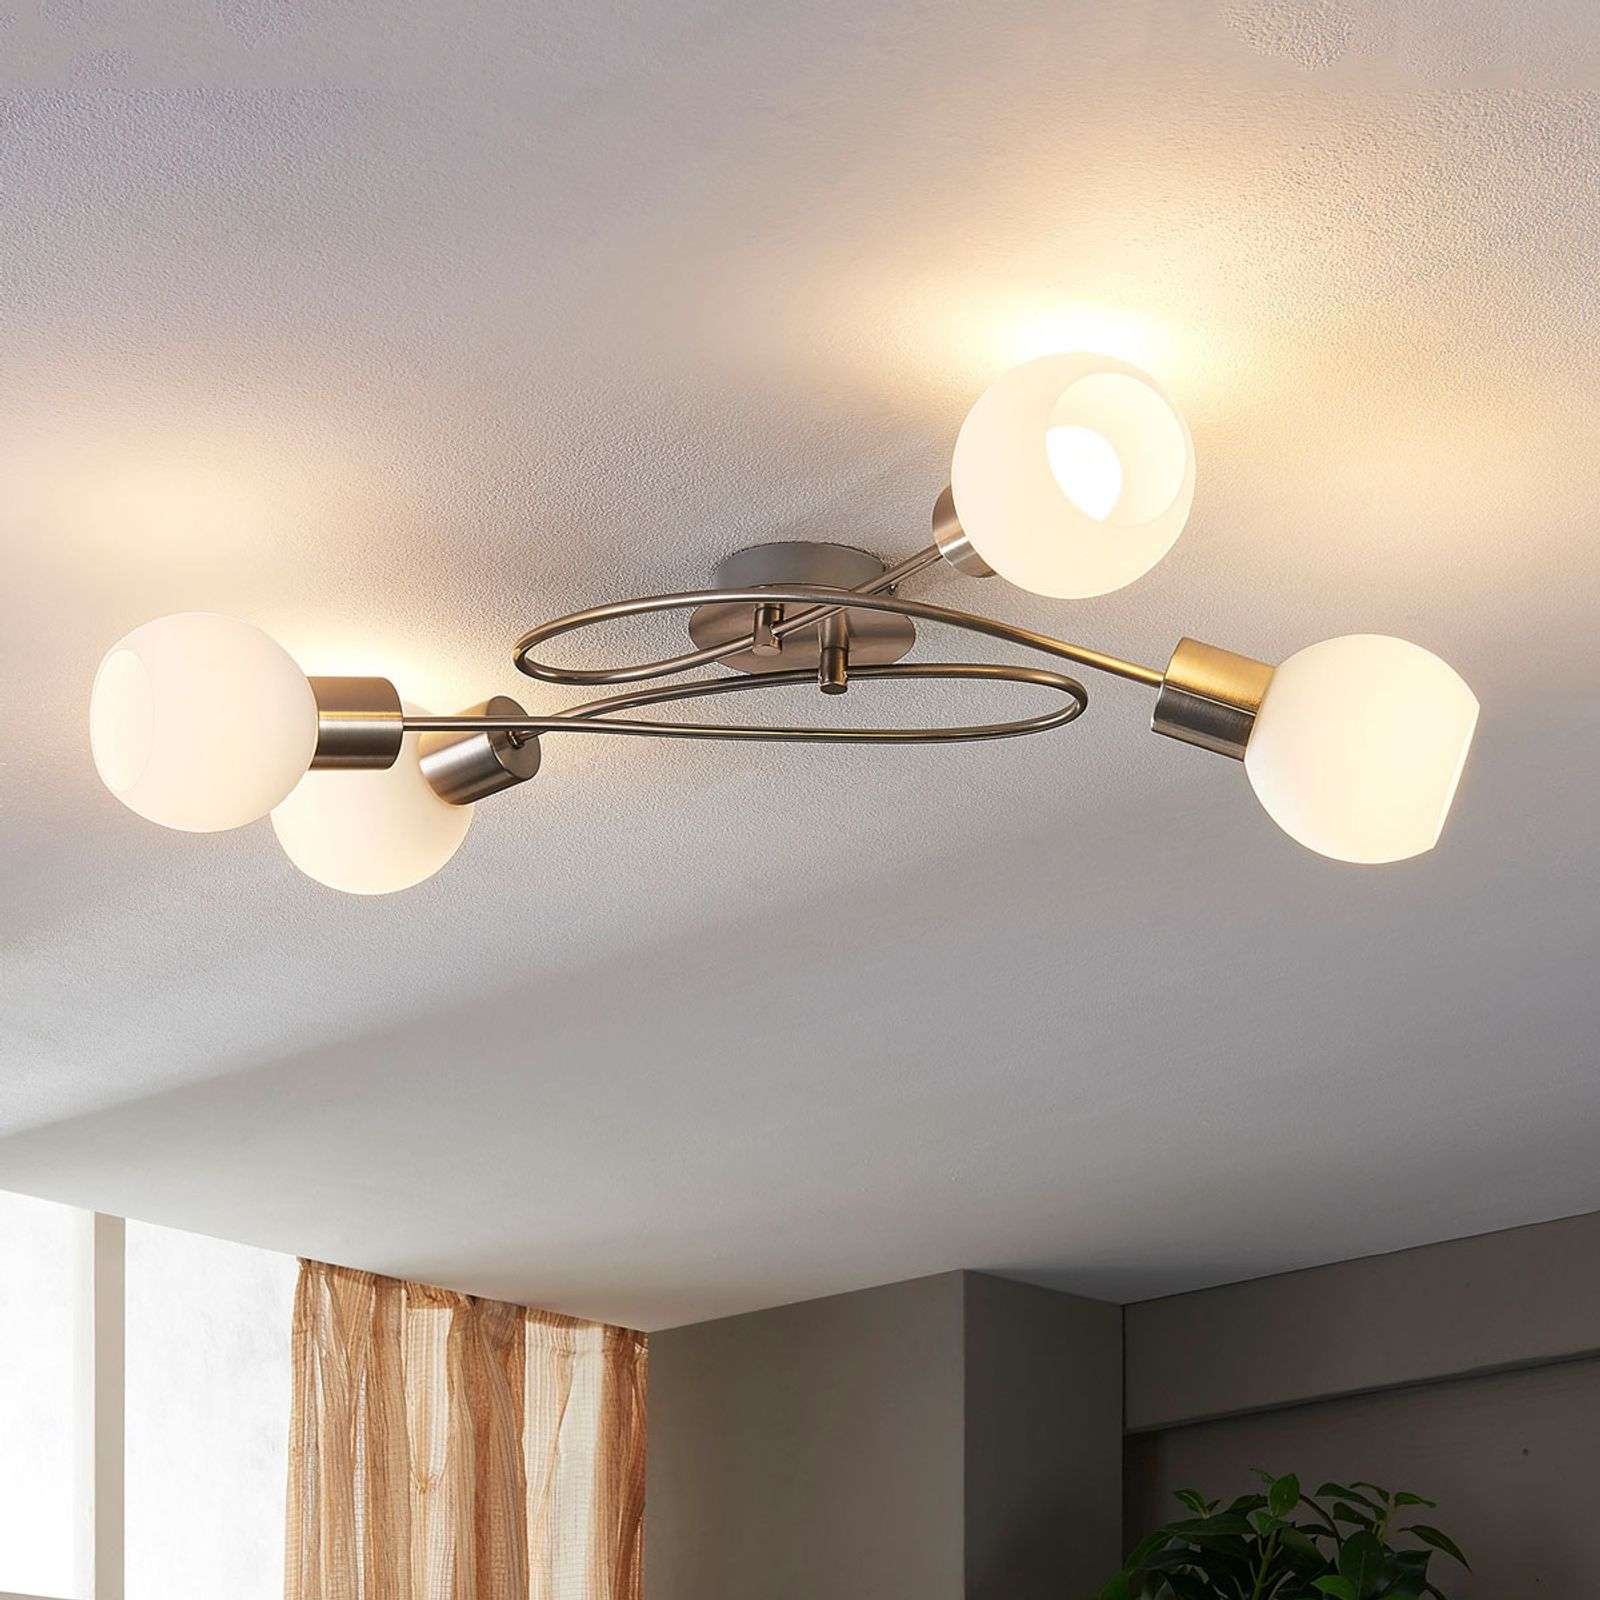 Plafonnier LED Hailey à 4 lampes, nickel